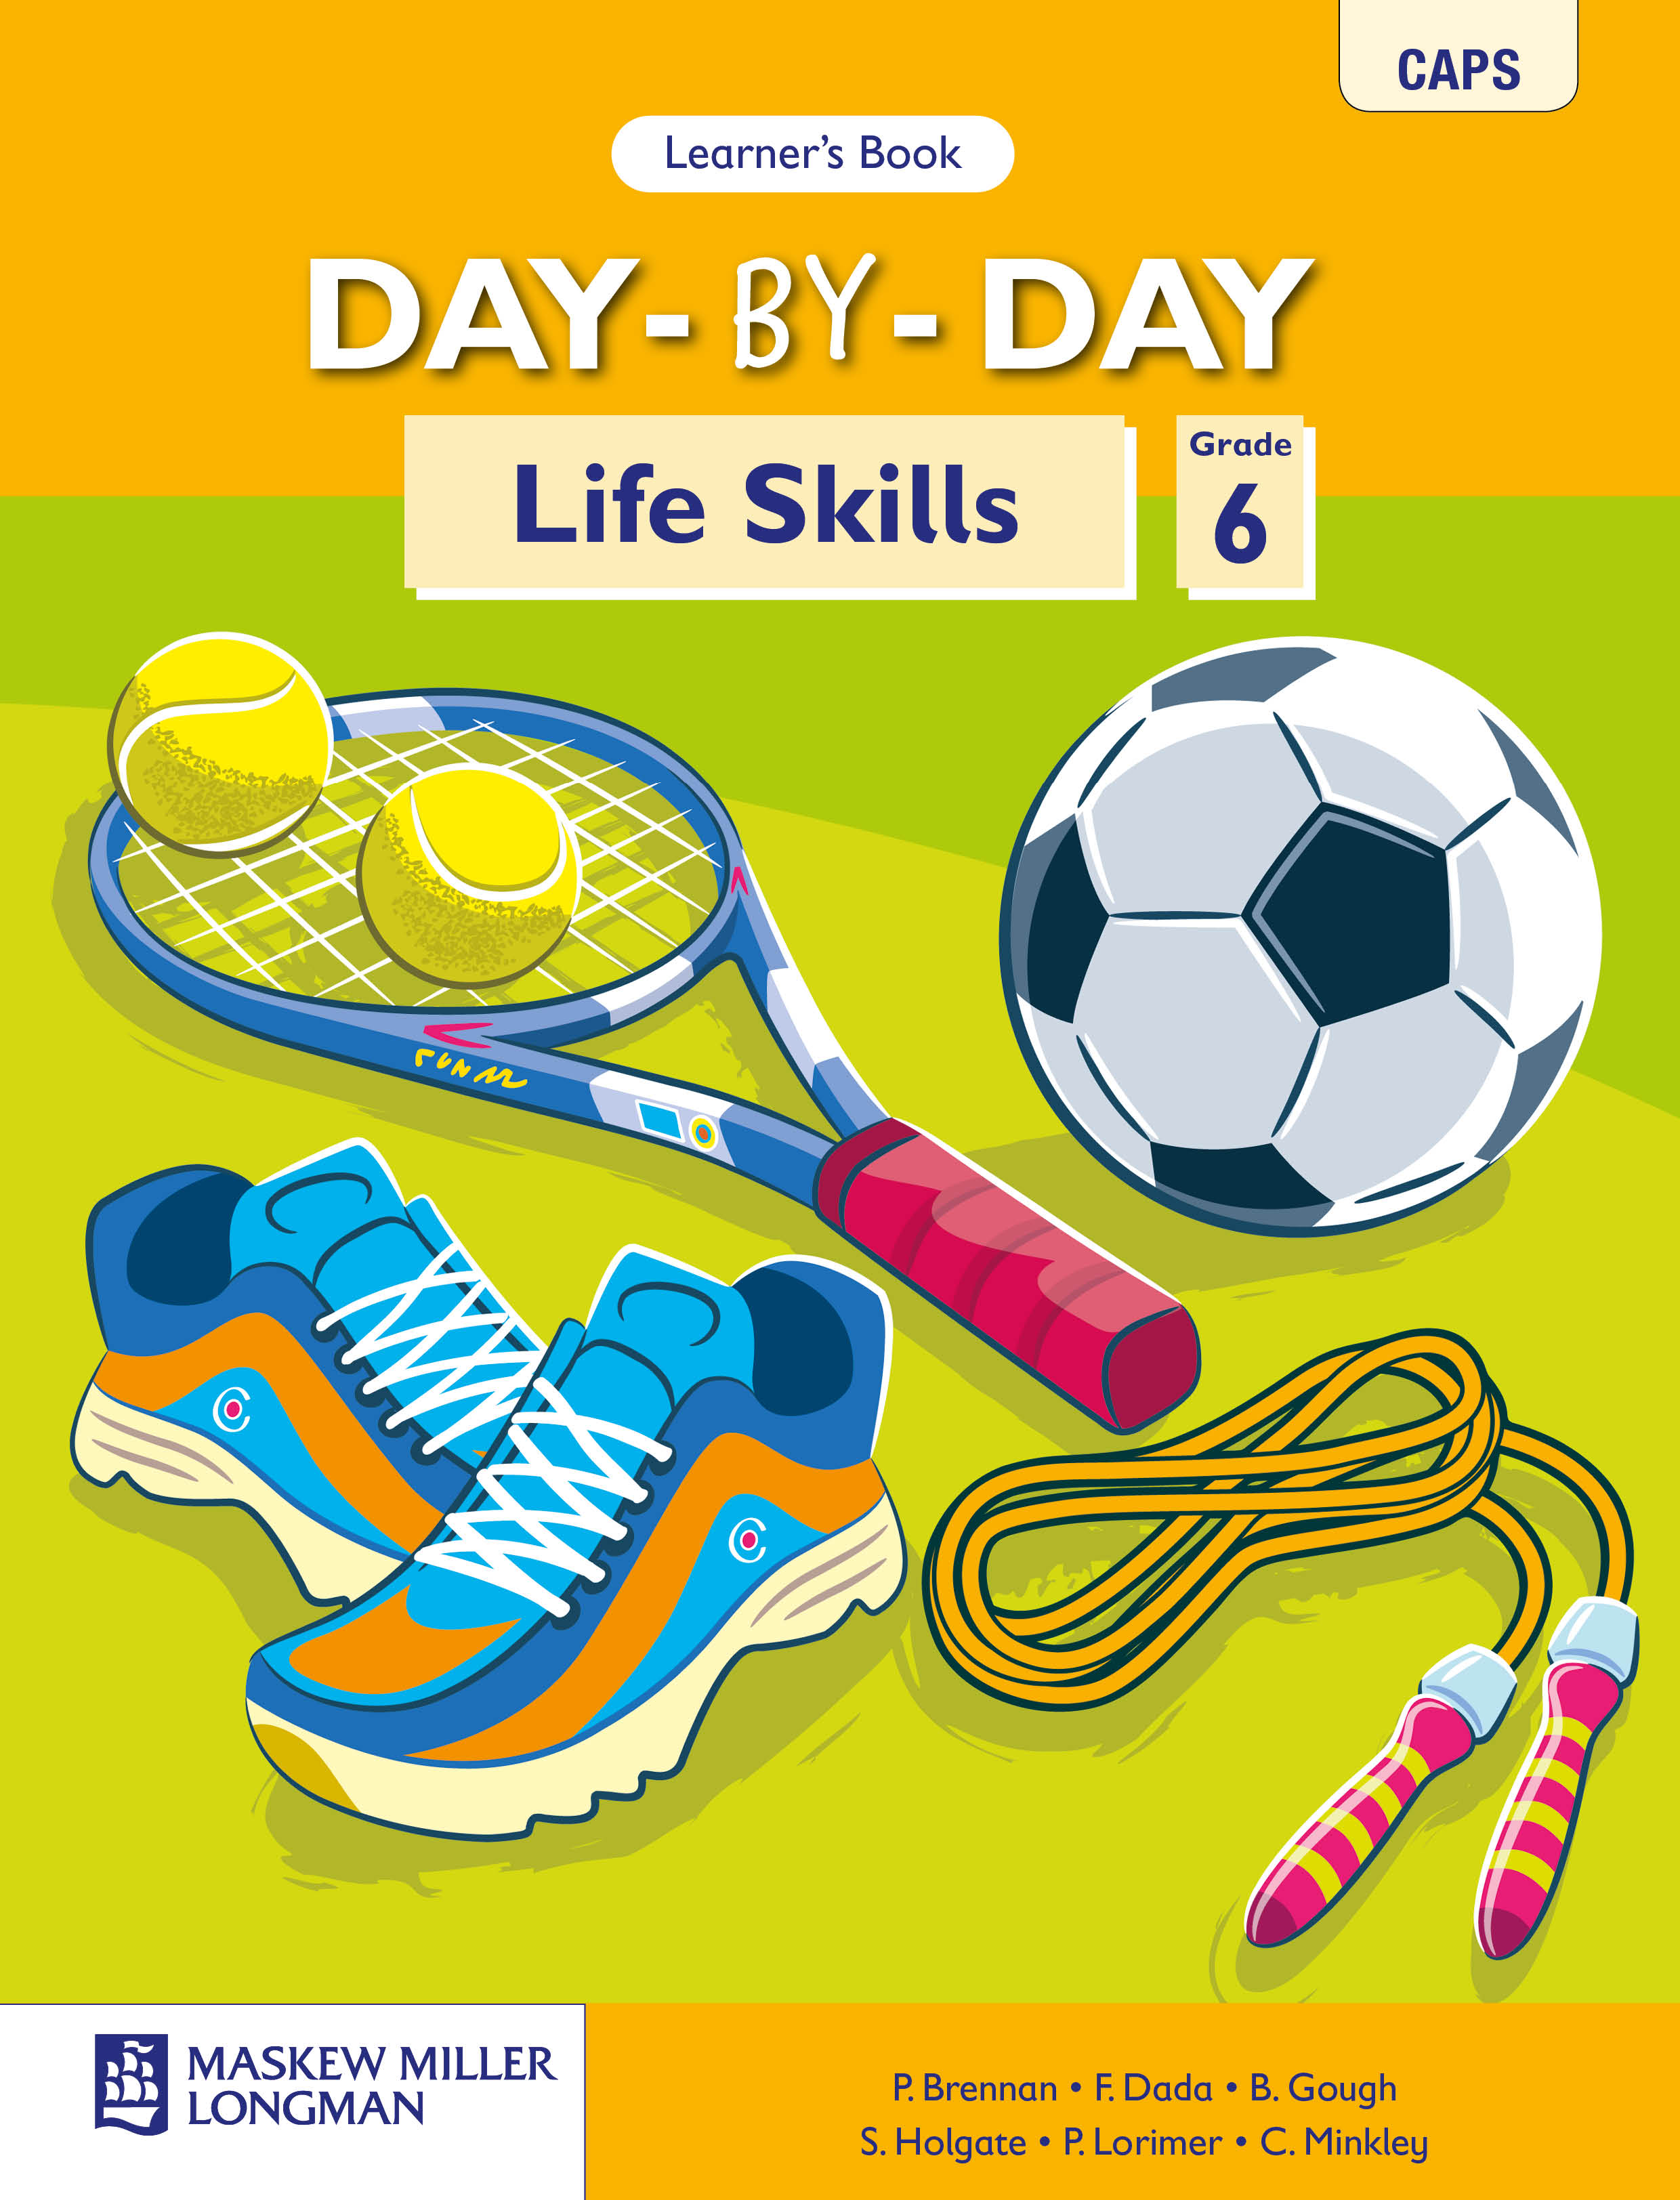 Picture of Day-by-day life skills CAPS